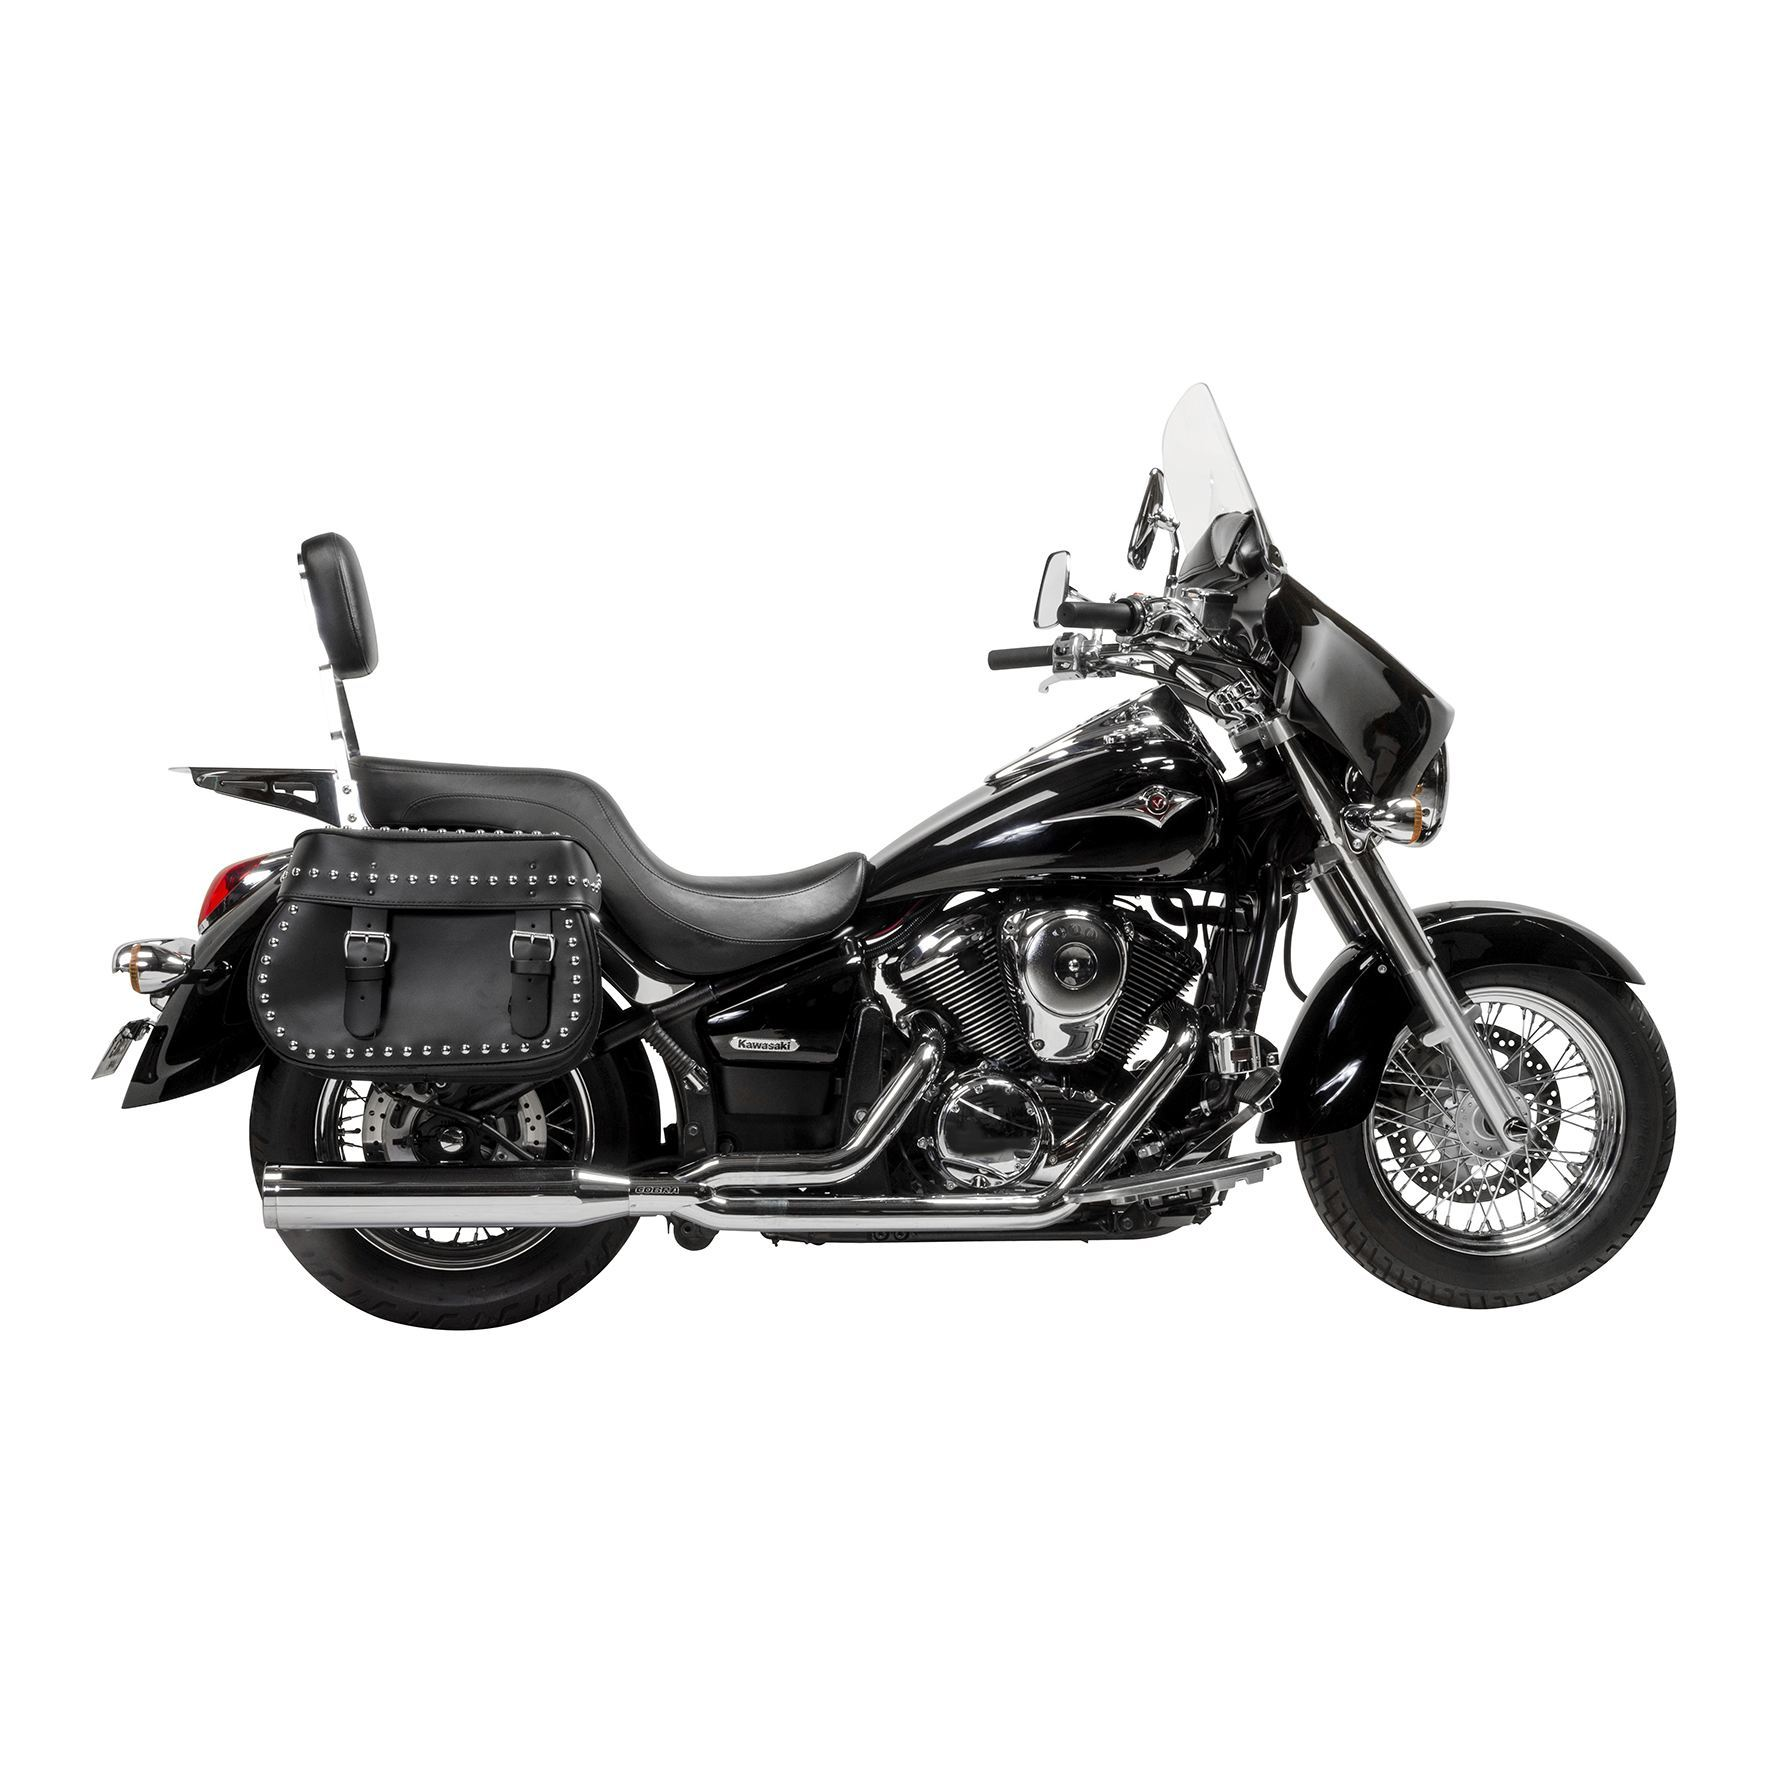 Willie and Max Mighty Legend Studded Leather Saddlebags on a Kawasaki Vulcan 900 Motorcycle